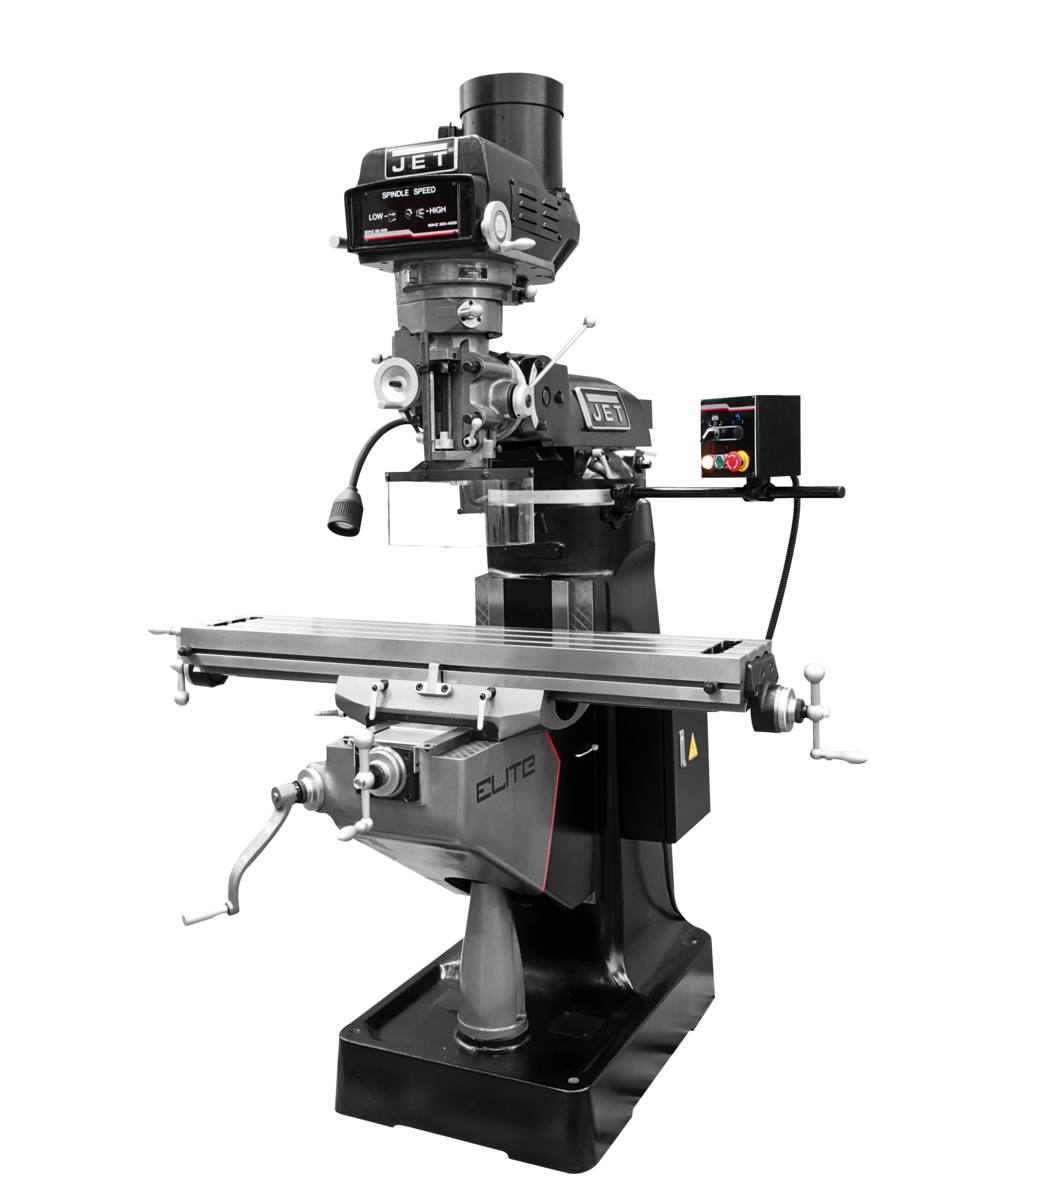 ETM-949 Mill with 2-Axis ACU-RITE 303  DRO and X-Axis JET Powerfeed and USA Made Air Draw Bar